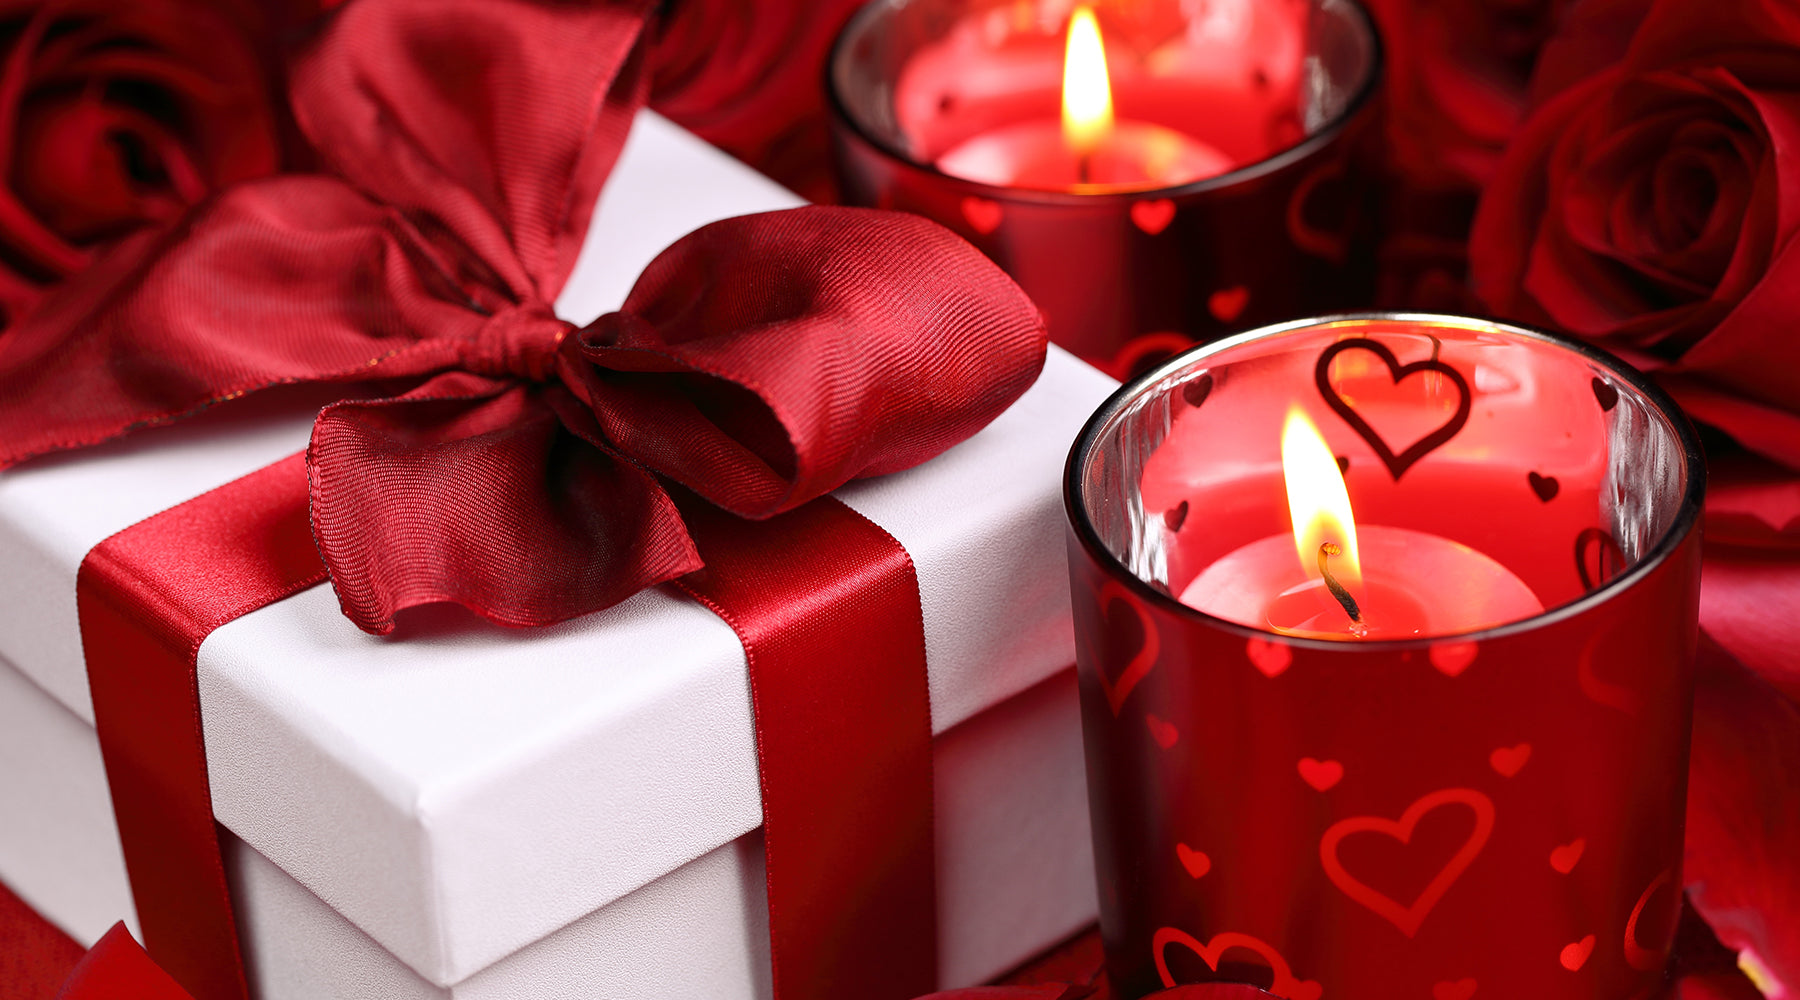 a white giftbox alongside with a candle in a red container with roses in back